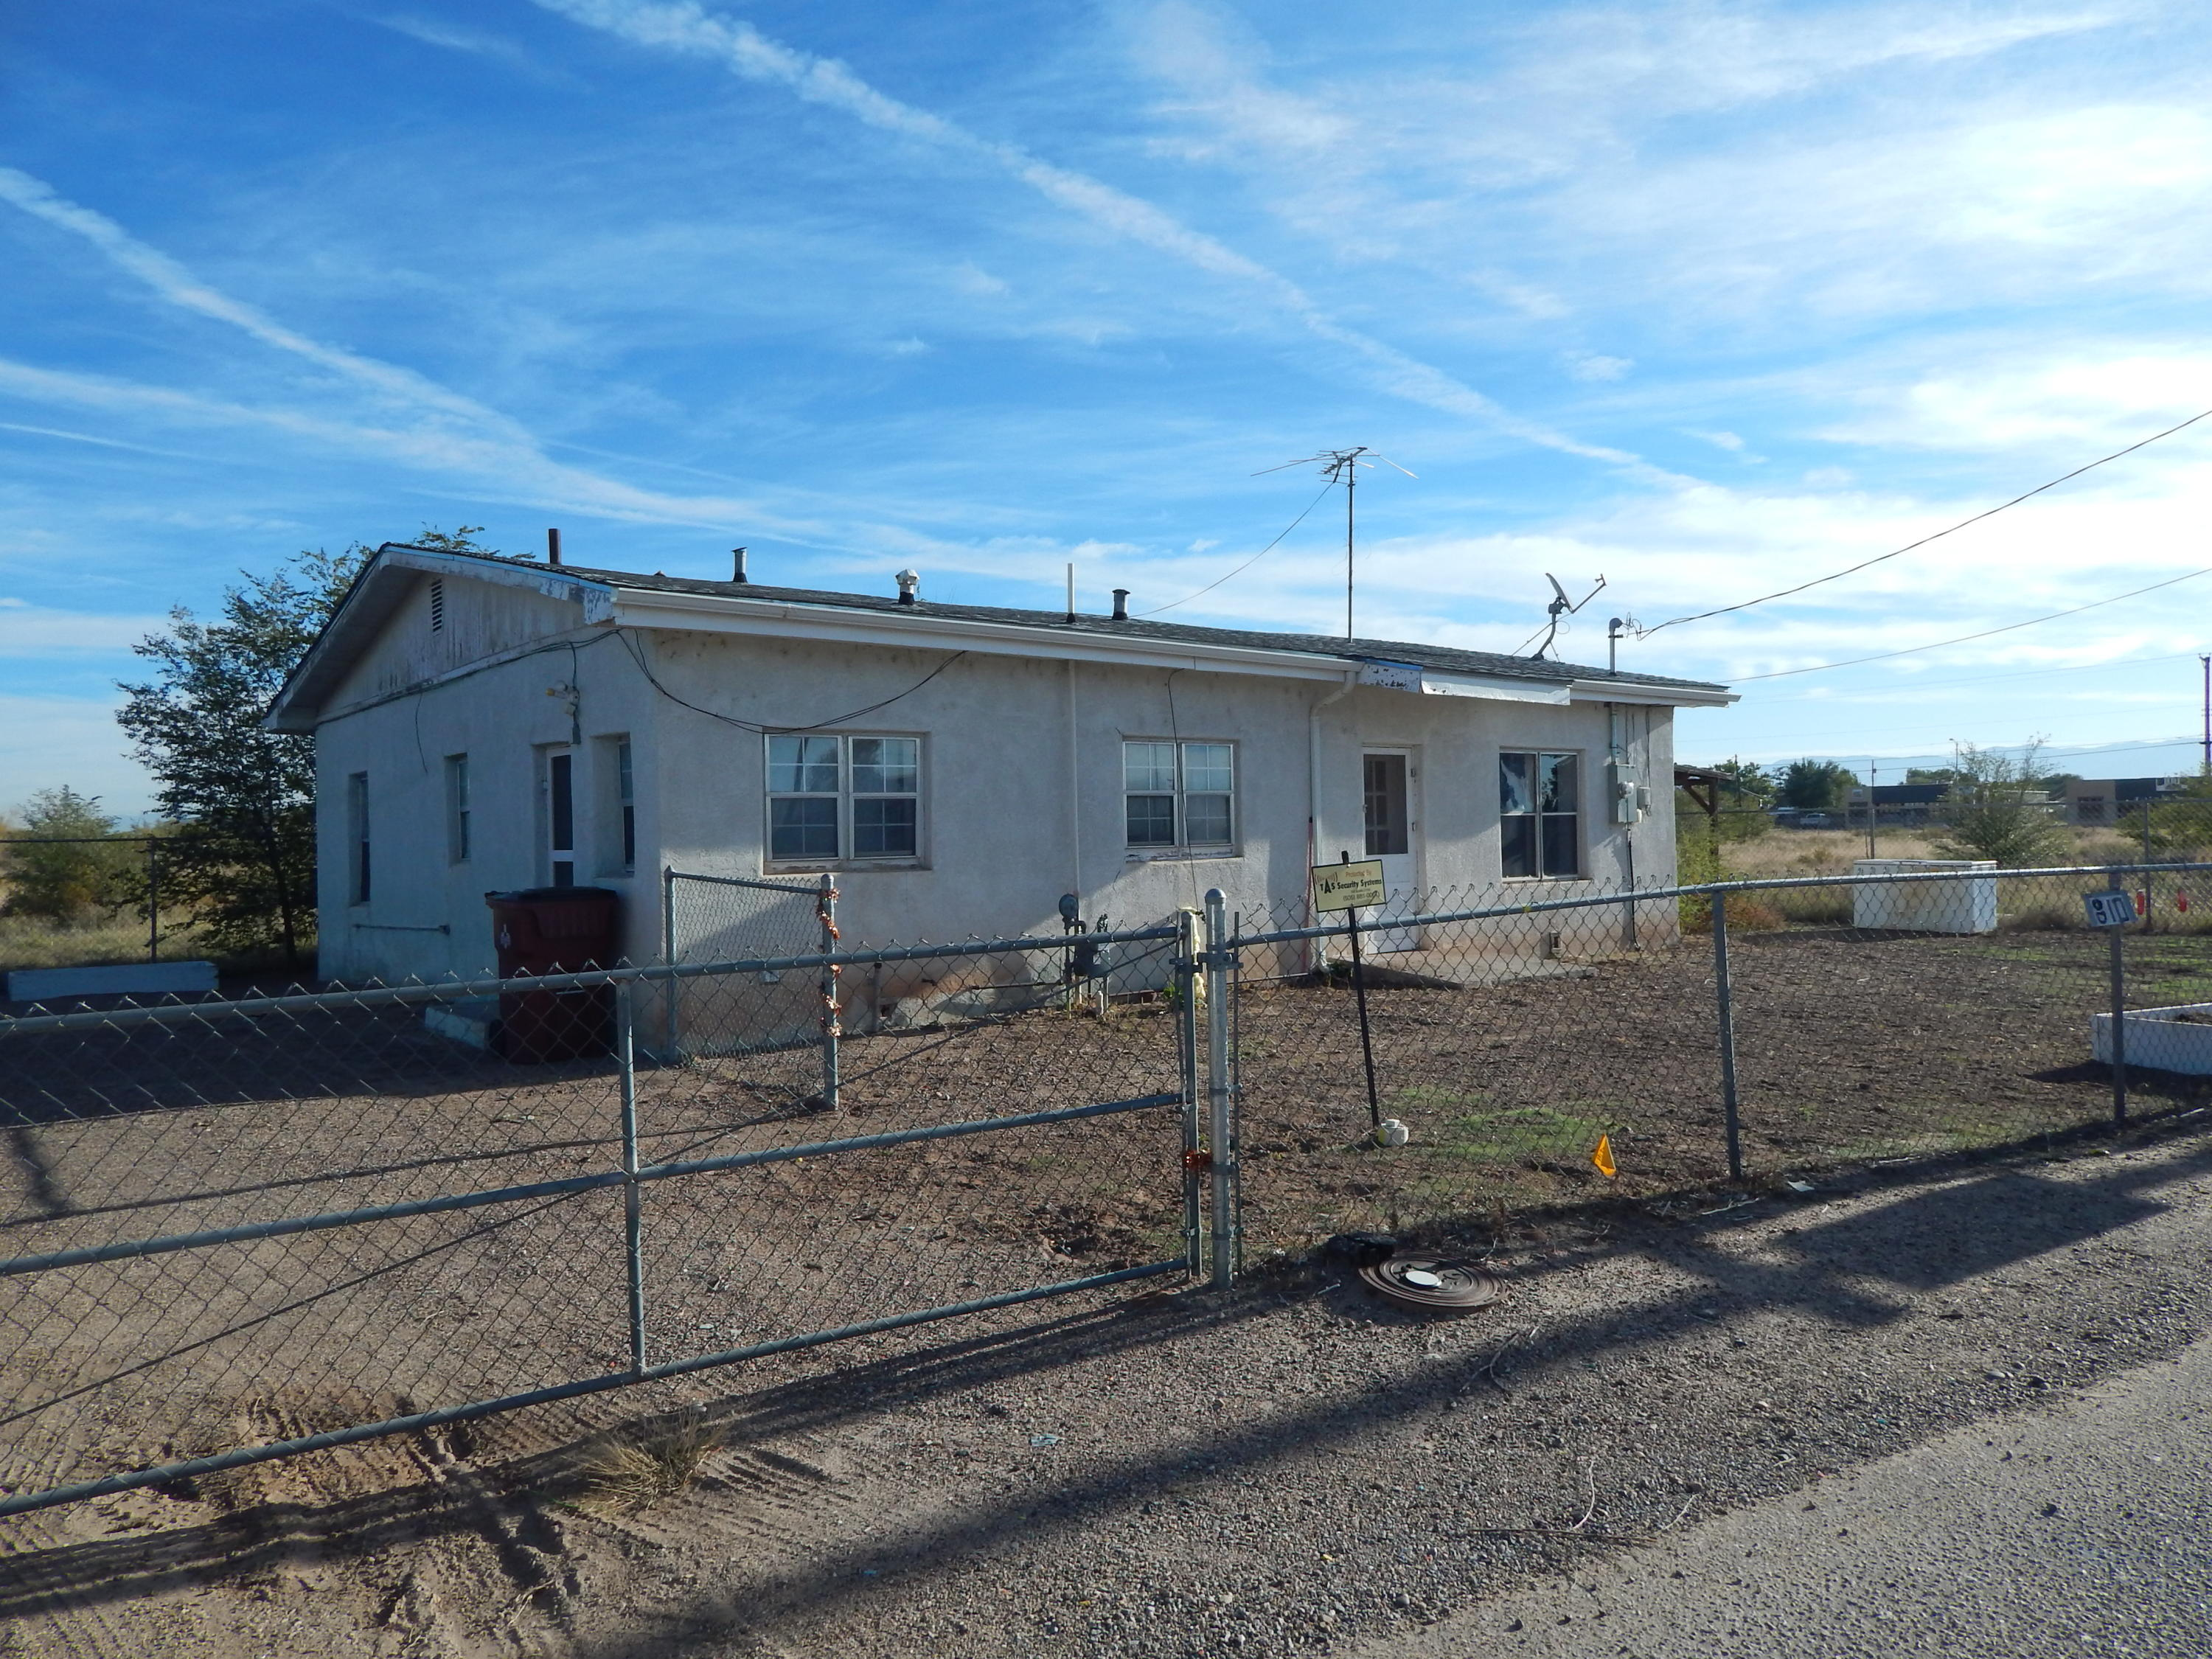 3 bedroom, 1 bath, 1,338 sq ft in convenient Belen location.  Completely fenced with plenty of space to park extra vehicles.  Needs some TLC.